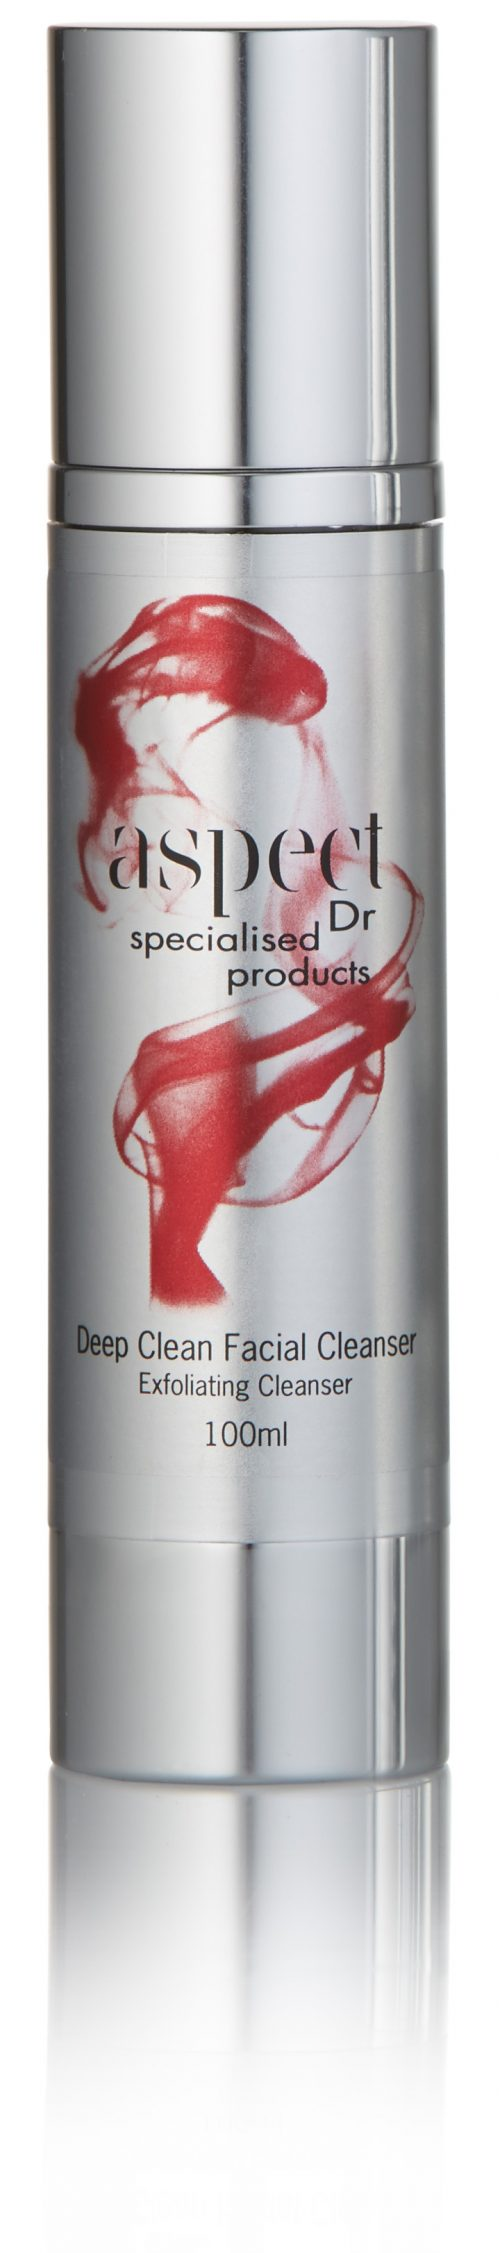 Aspect DR - Deep Cleanser Facial Cleanser